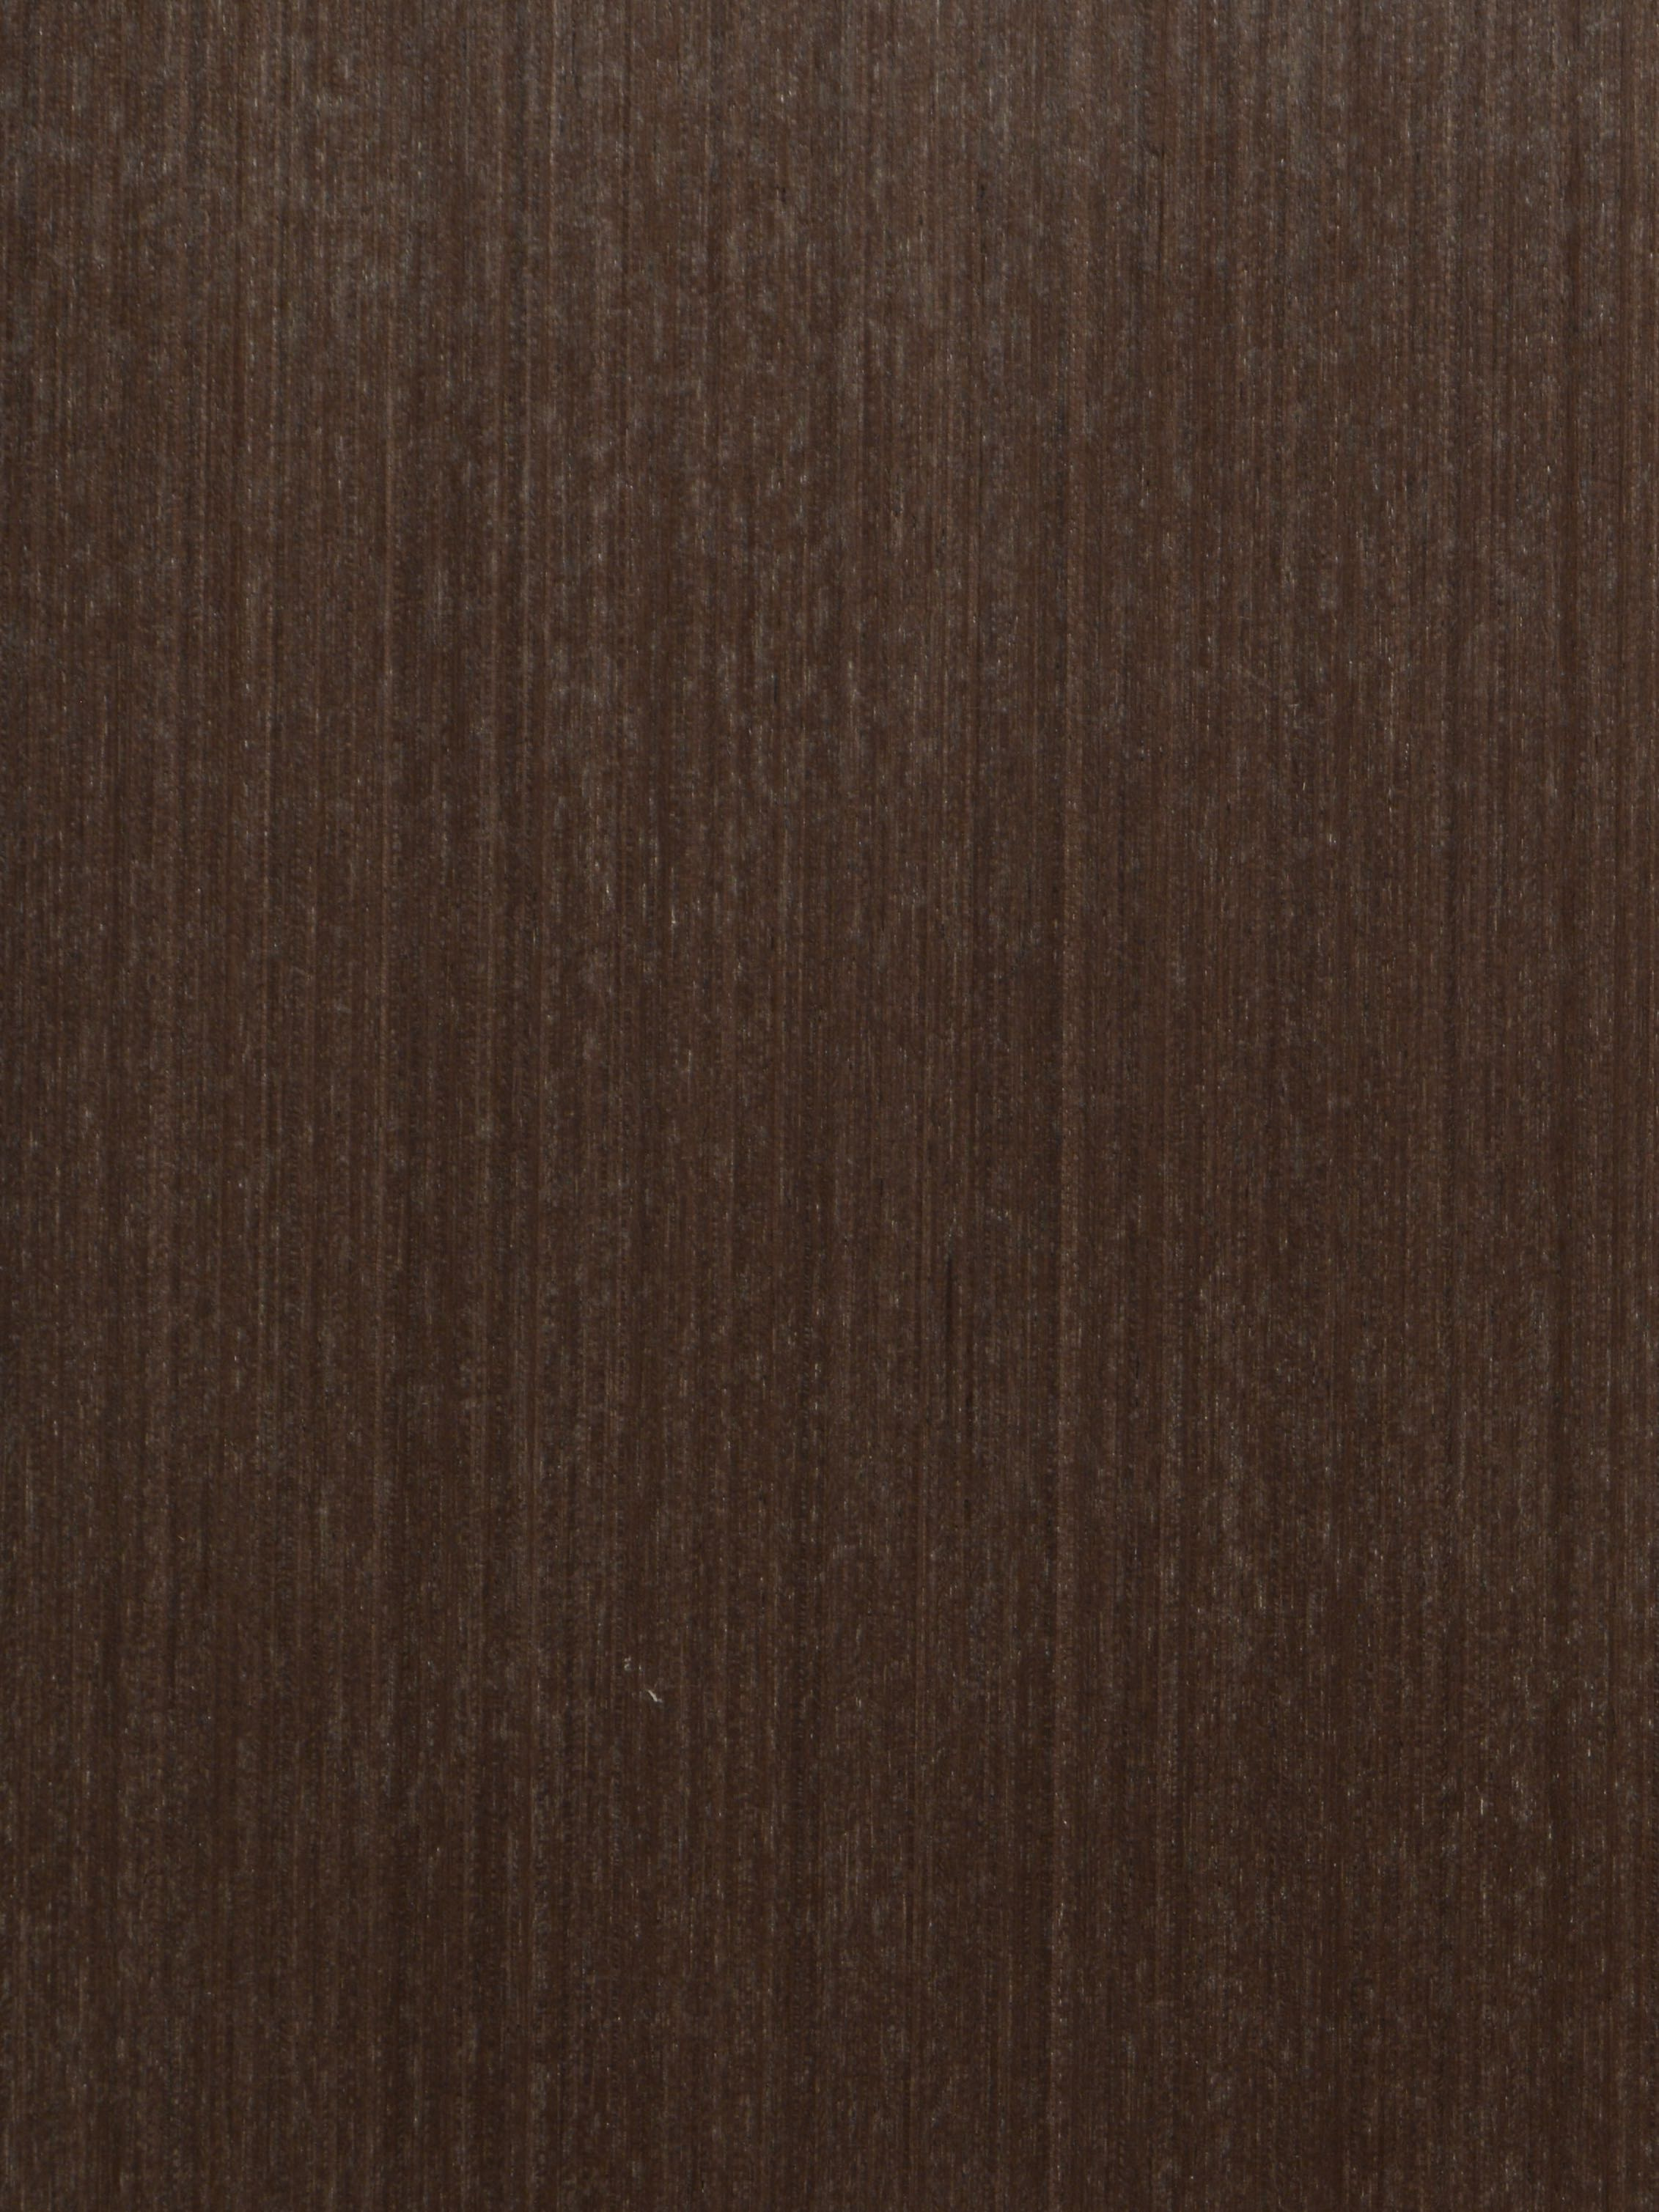 how to make kitchen cabinet doors outdoor for sale recon veneer platinum wenge door